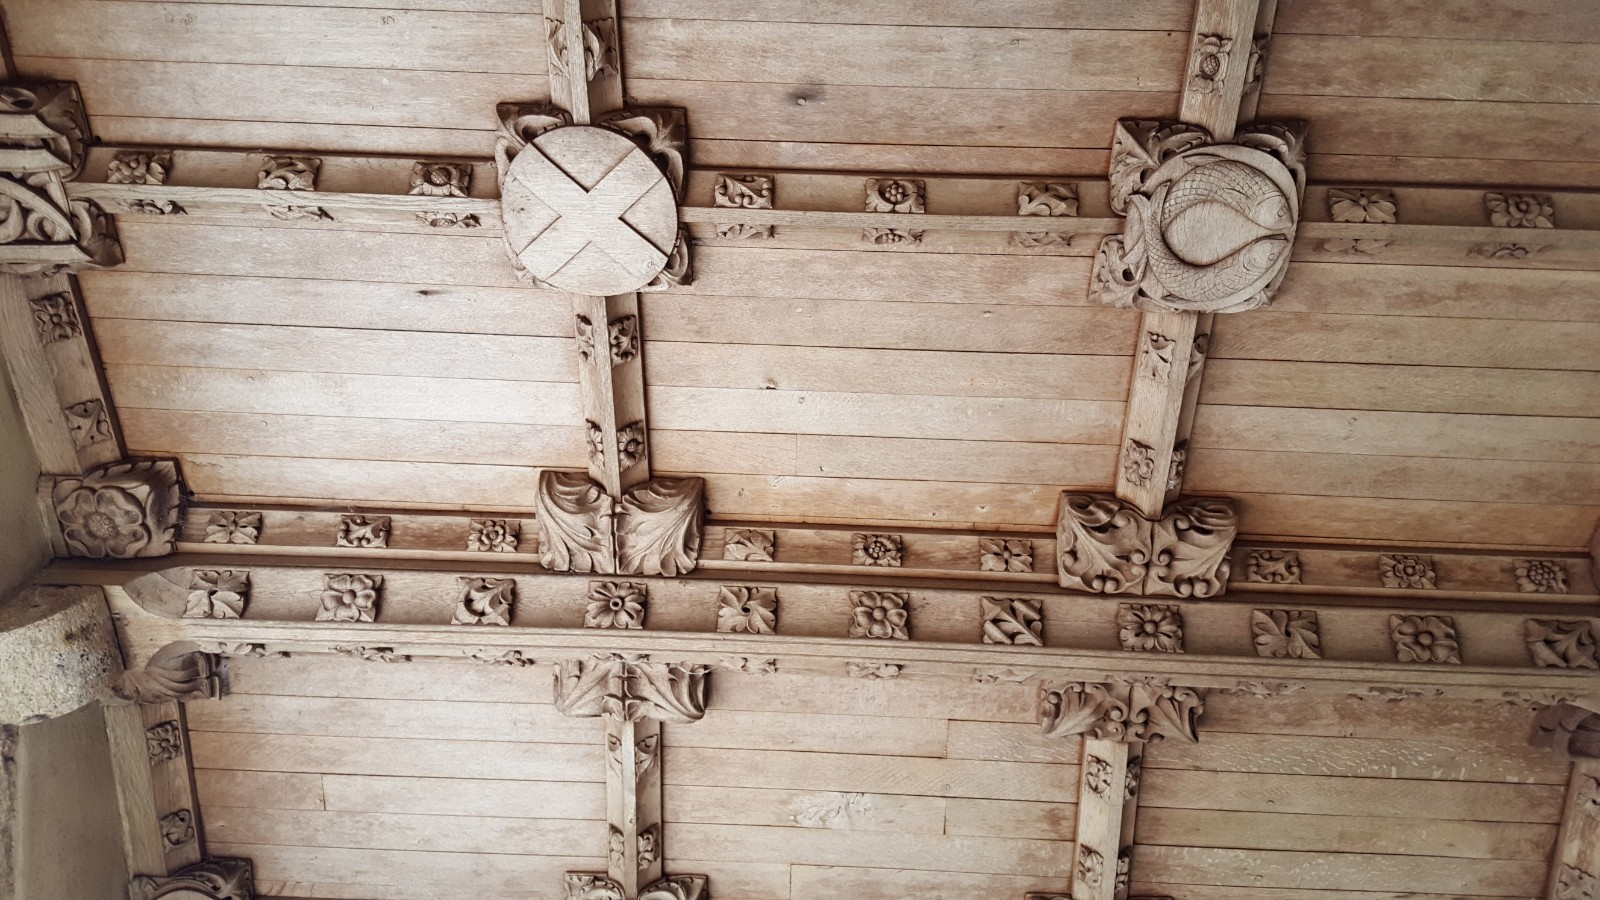 Pinwill sisters ceiling, St Andrew's church, Sampford Courtenay, Devon